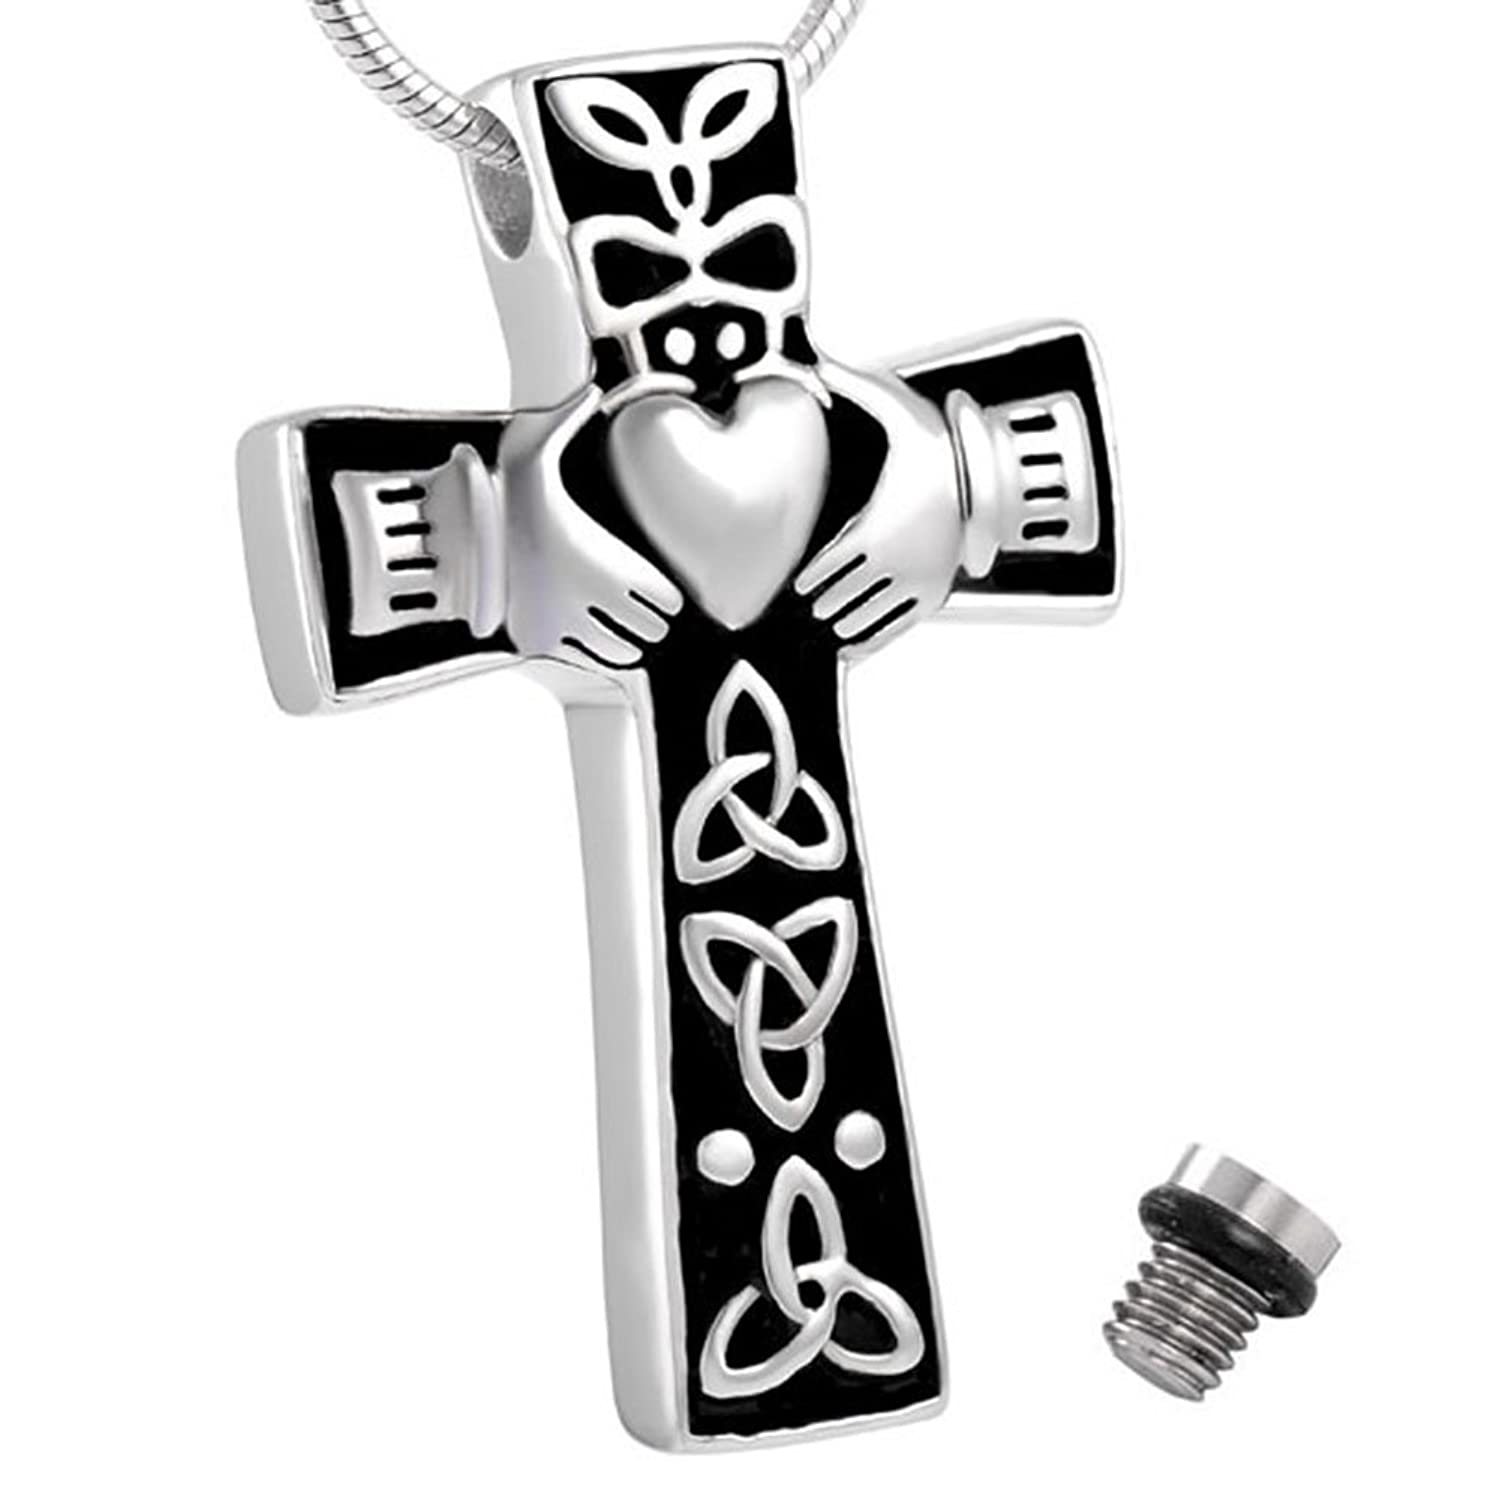 Celtic Cross Claddagh Urn Necklace for Ashes - Cremation Memorial Keepsake - Funnel Fill Kit Included